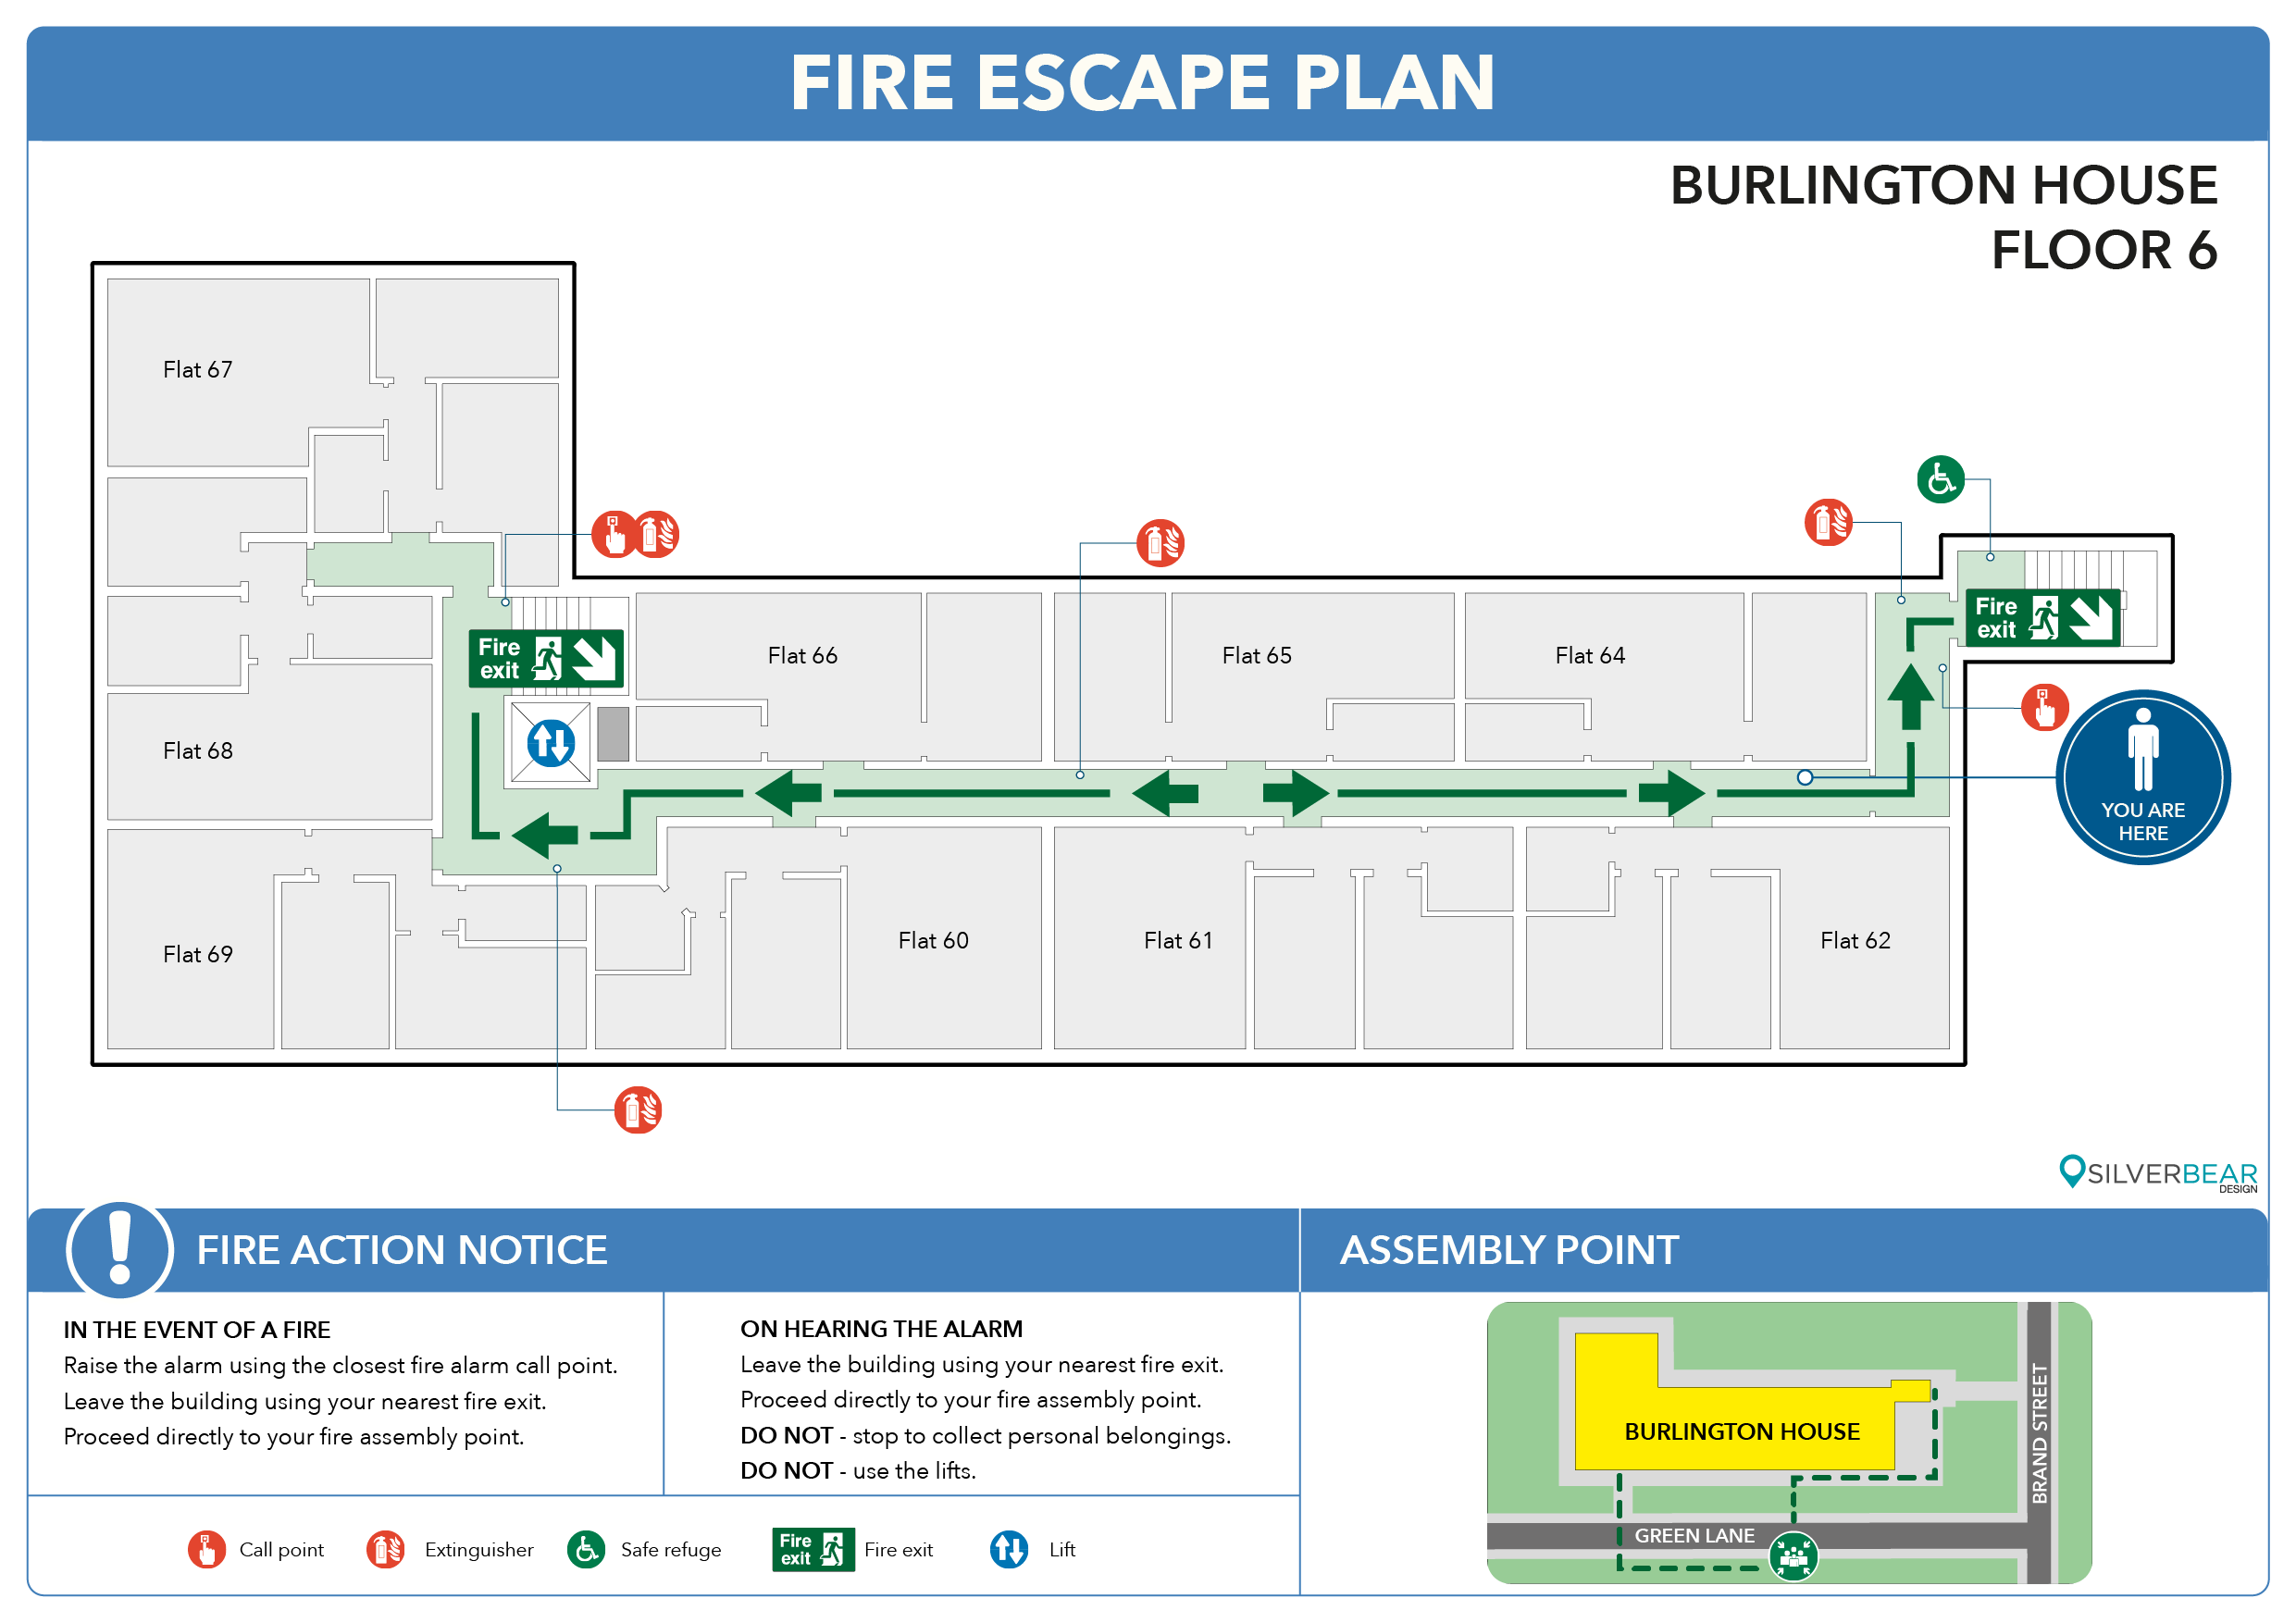 occupant emergency plan template - evacuation plans for flats and apartments silverbear design